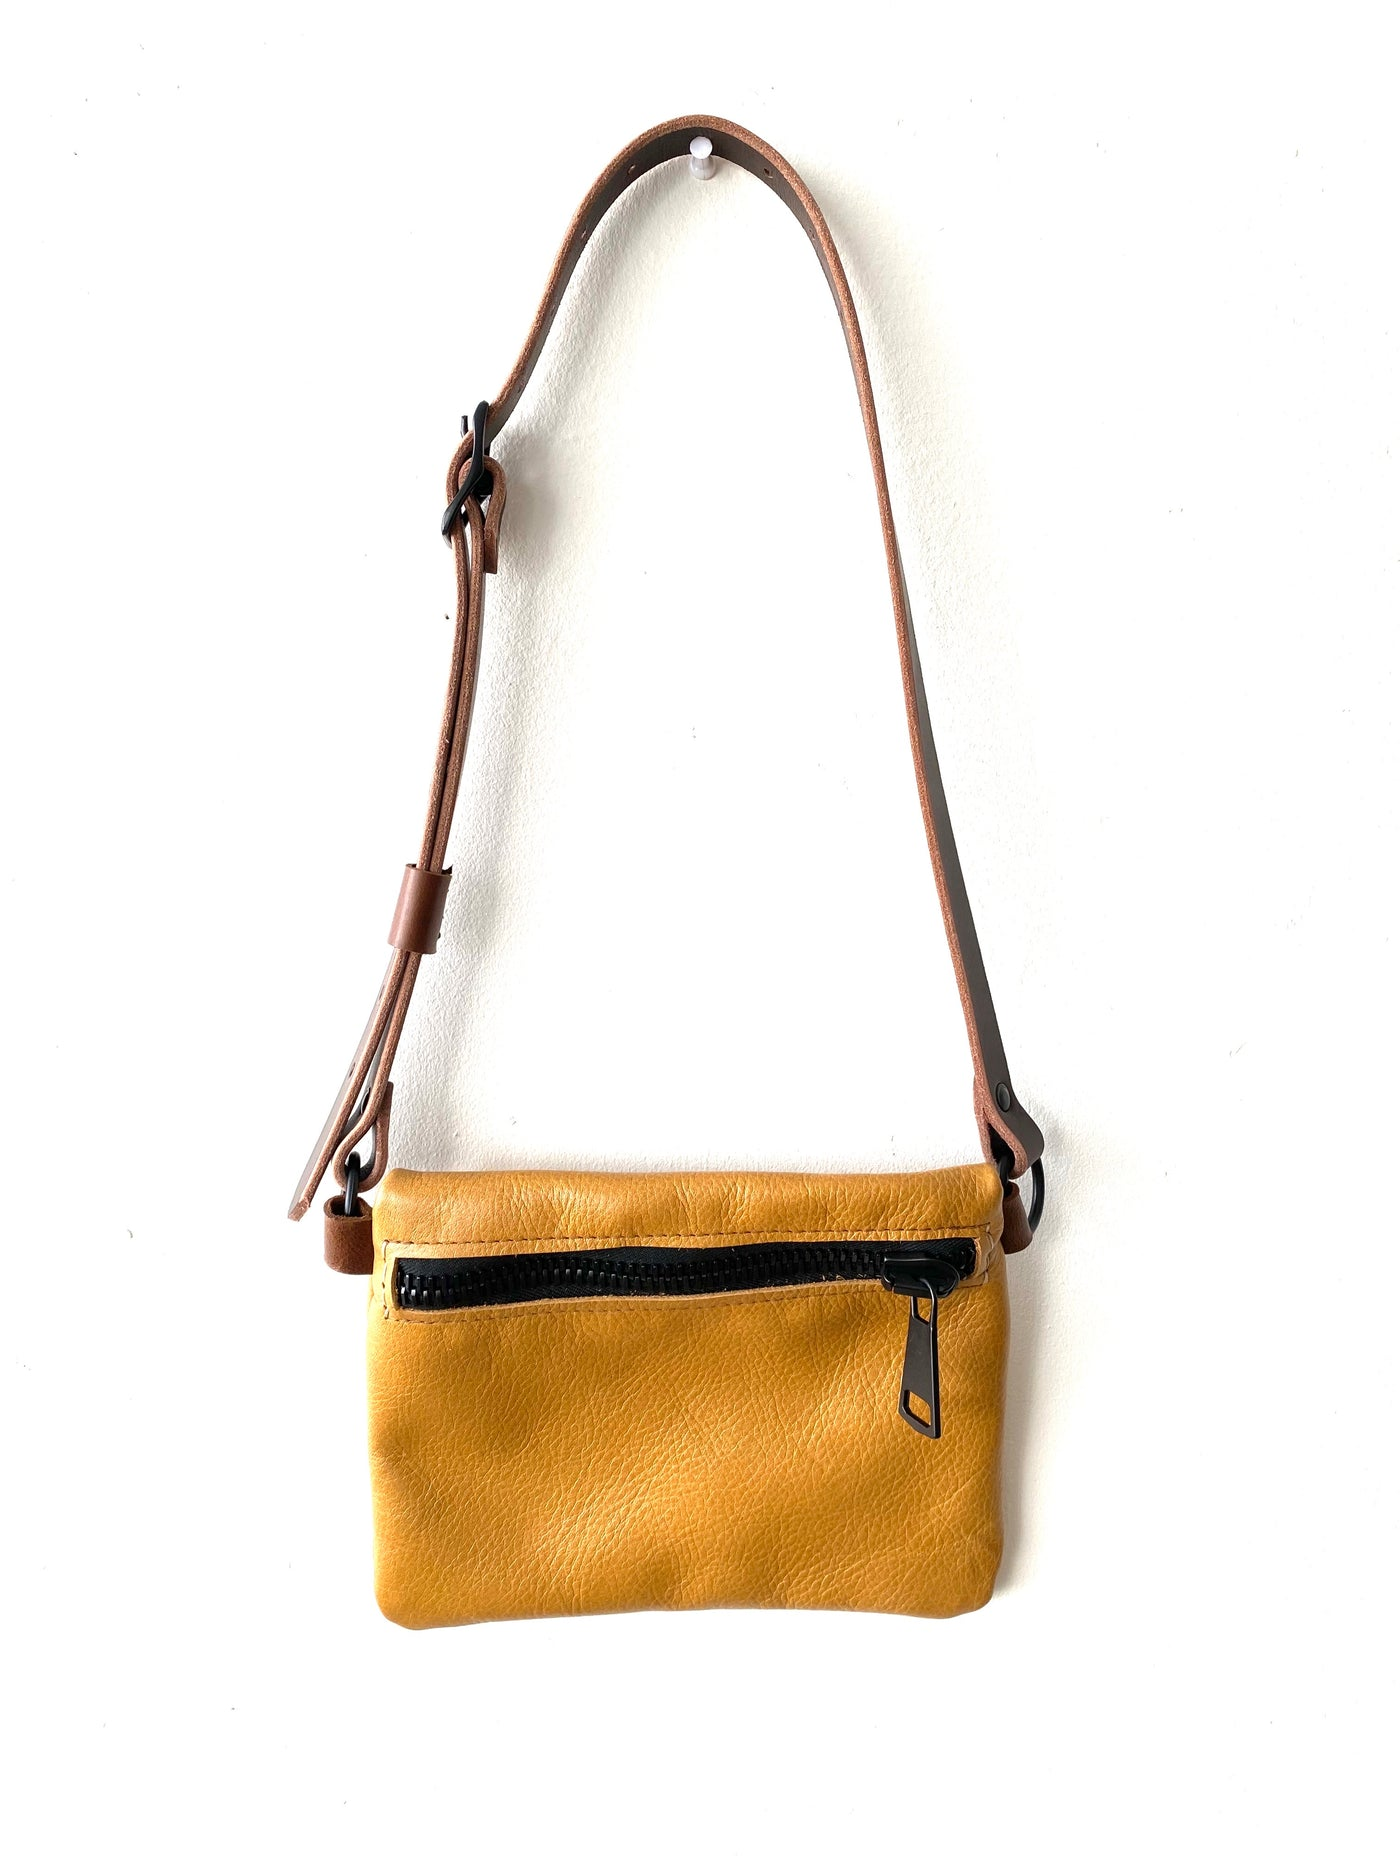 Gold Leather Fanny Pack by Your Bag of Holding